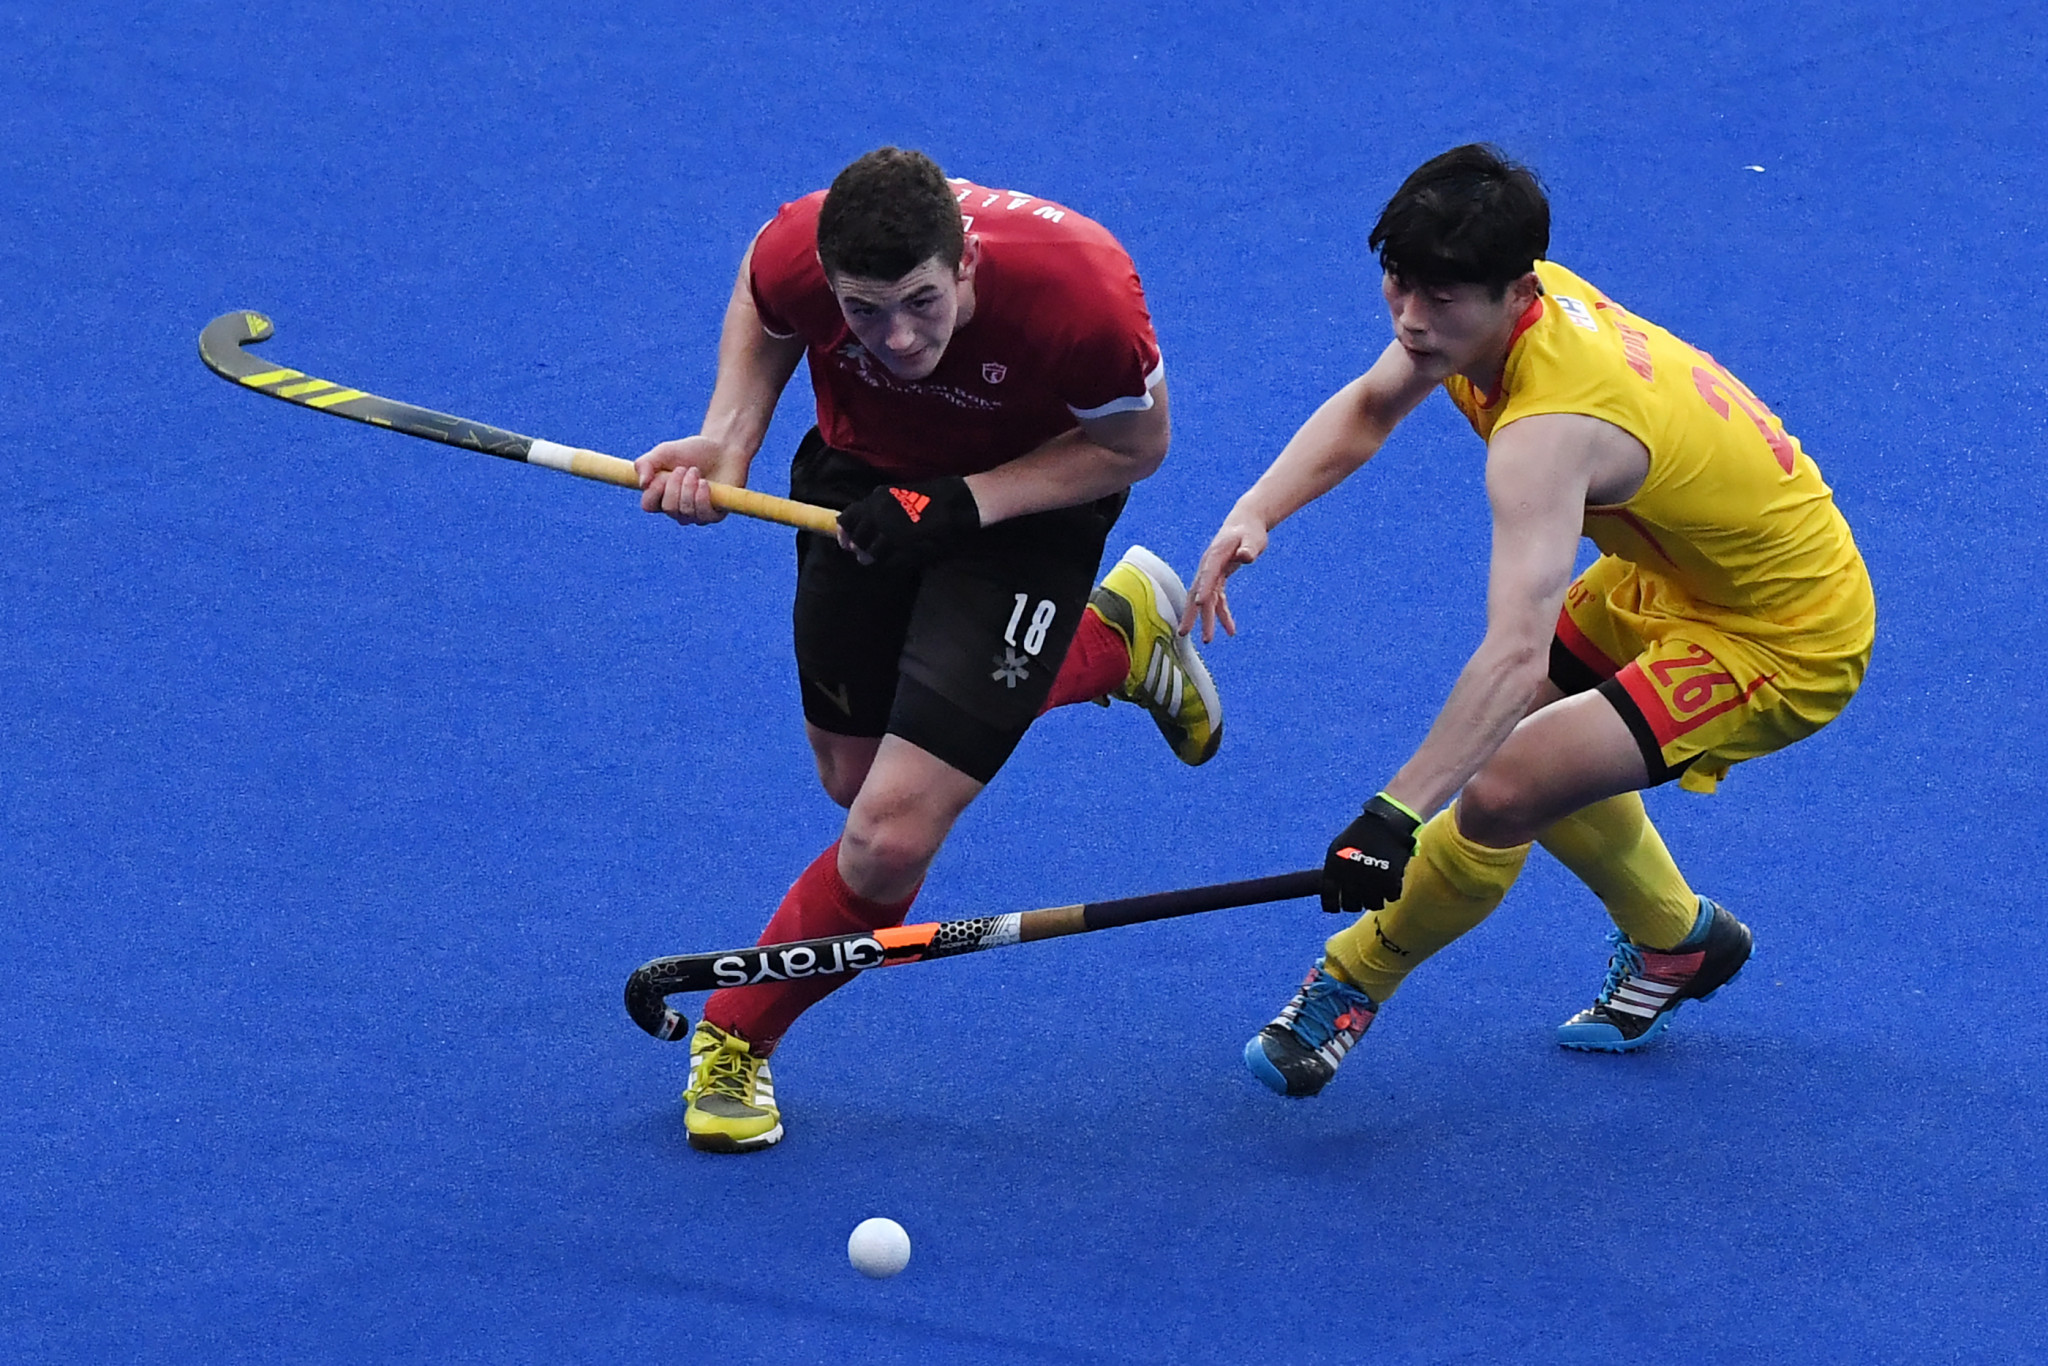 Canada progressed to the semi-final of the FIH Series Finals after defeating China in a shootout ©Getty Images